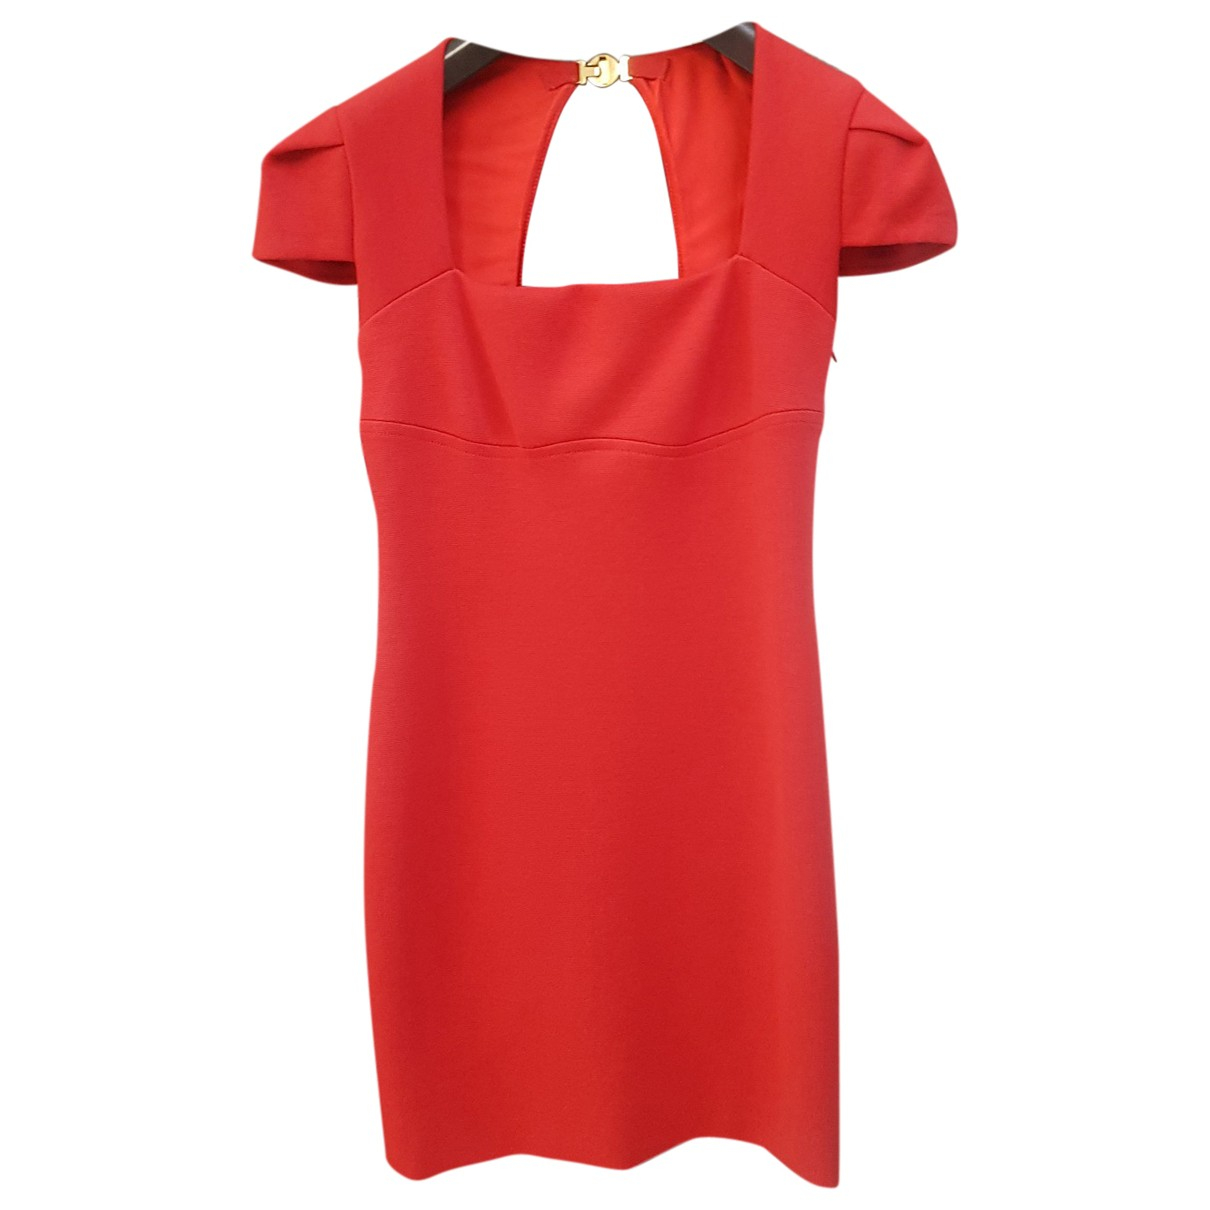 Emilio Pucci \N Red Wool dress for Women 40 IT